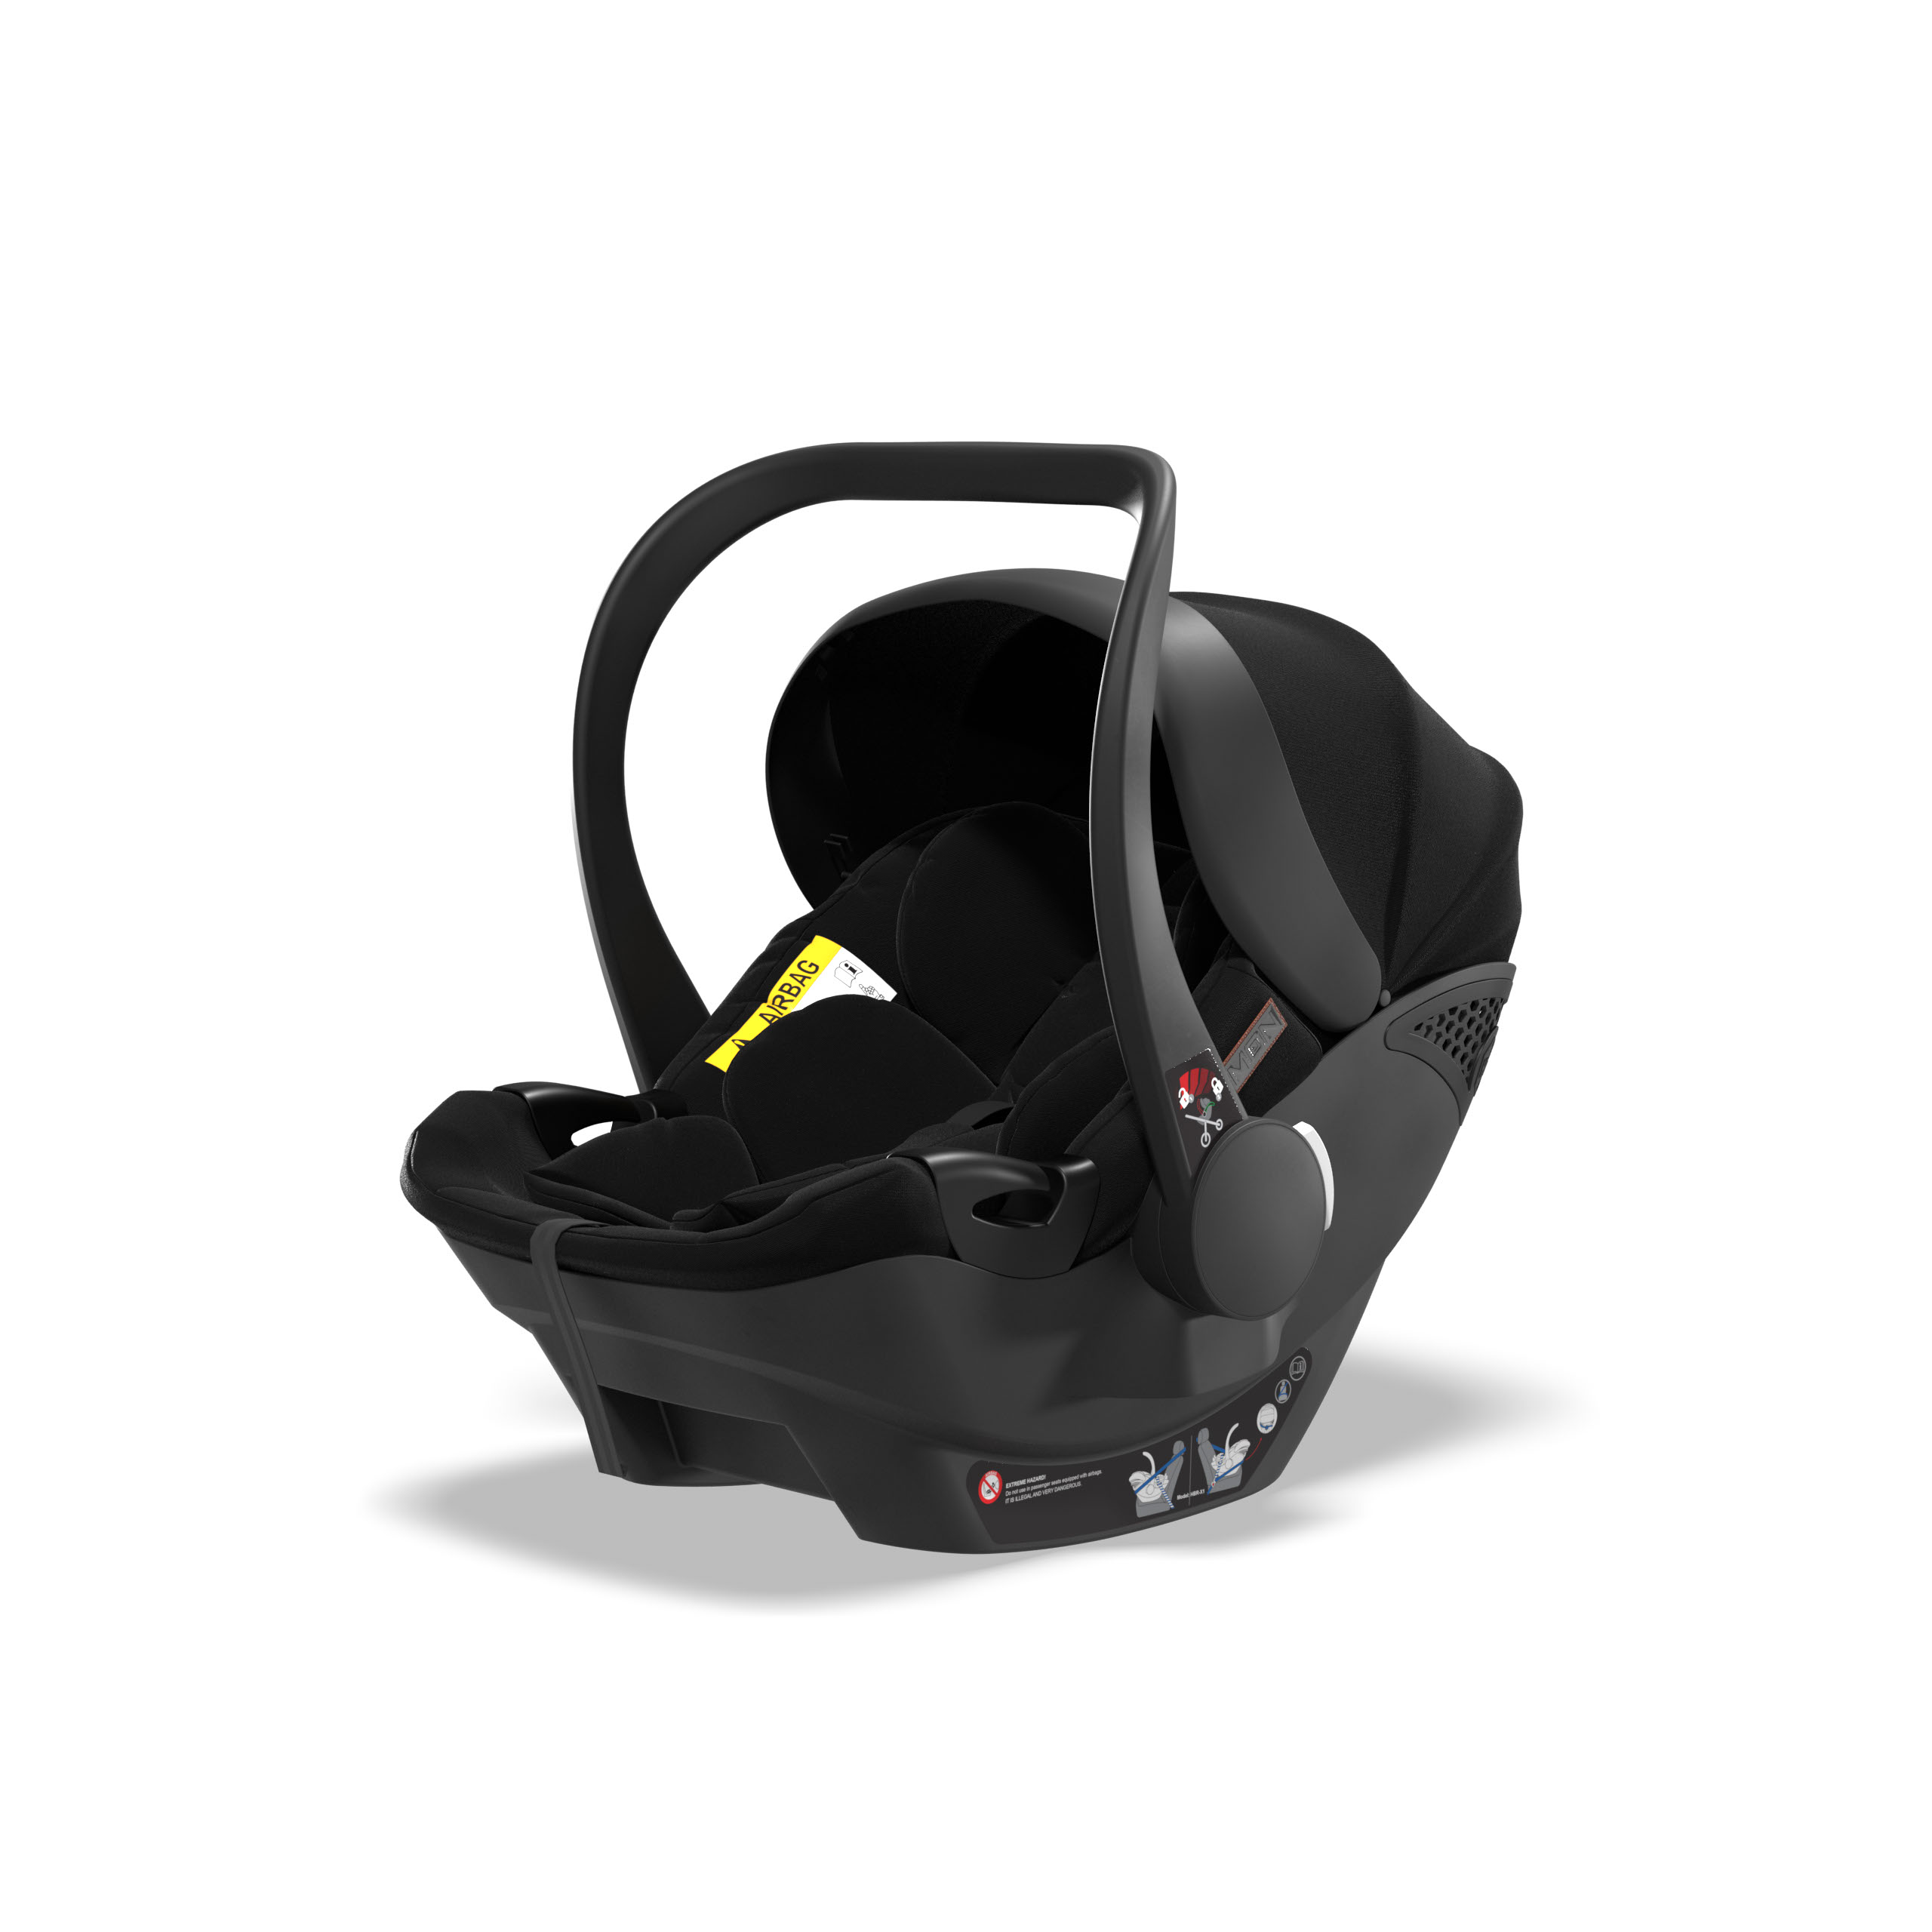 PLUS1 Baby car seat - COLLECTION 2022